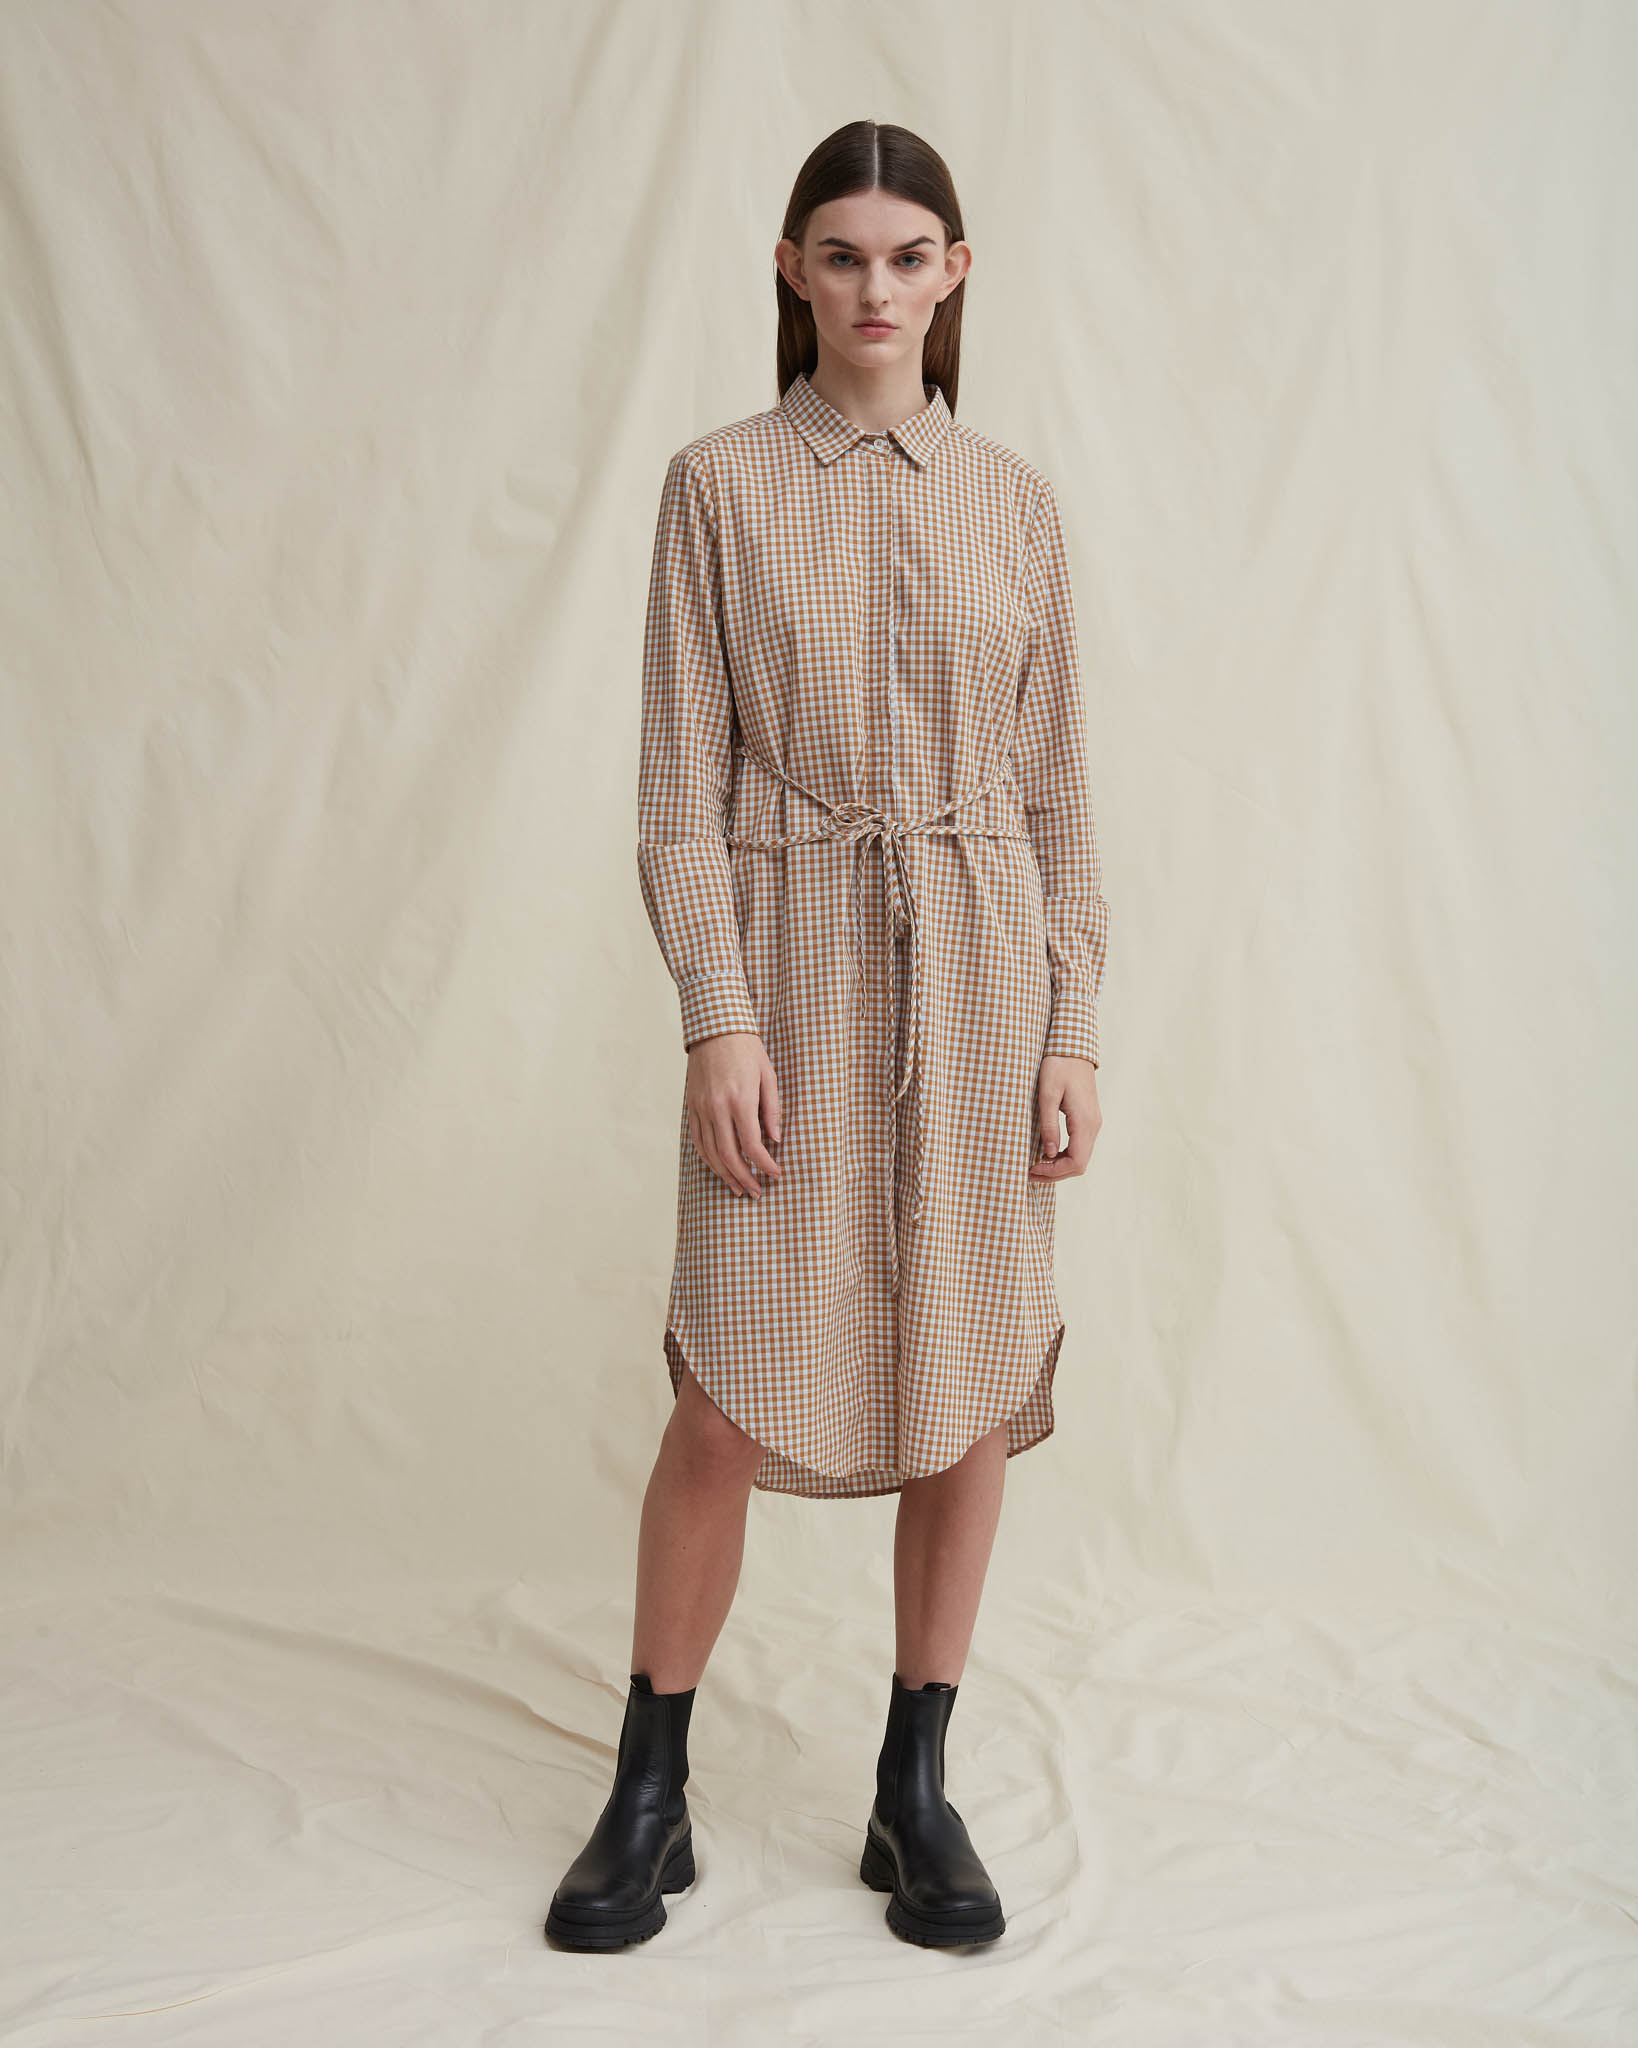 DIPPY ORGANIC COTTON SHIRT DRESS BEIGECHECKERED schulz by crowd økologisk bomuld